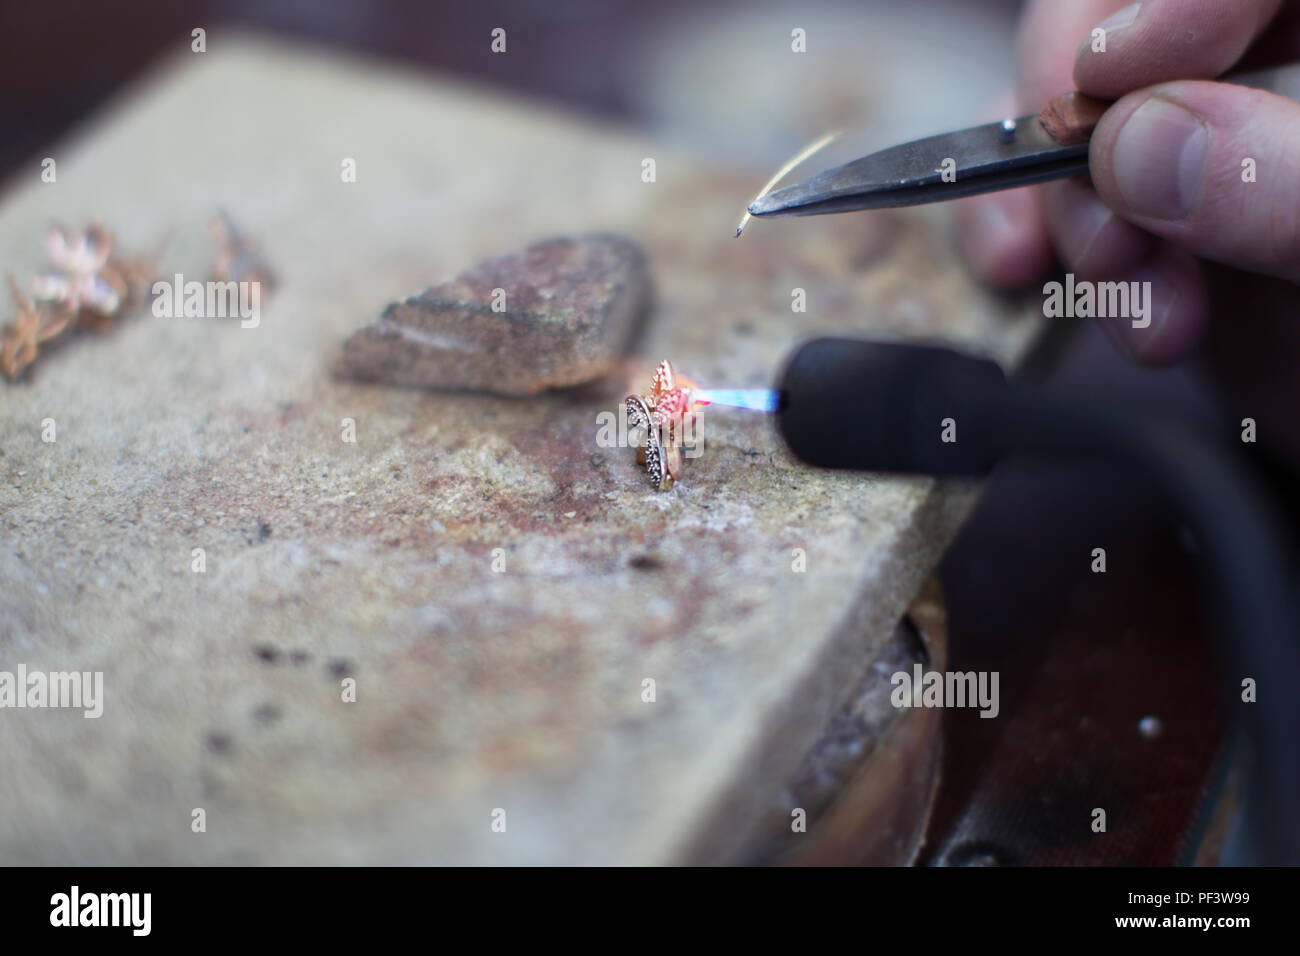 Industrial manufacture of the gold ring.Making a Gold Product - Stock Image